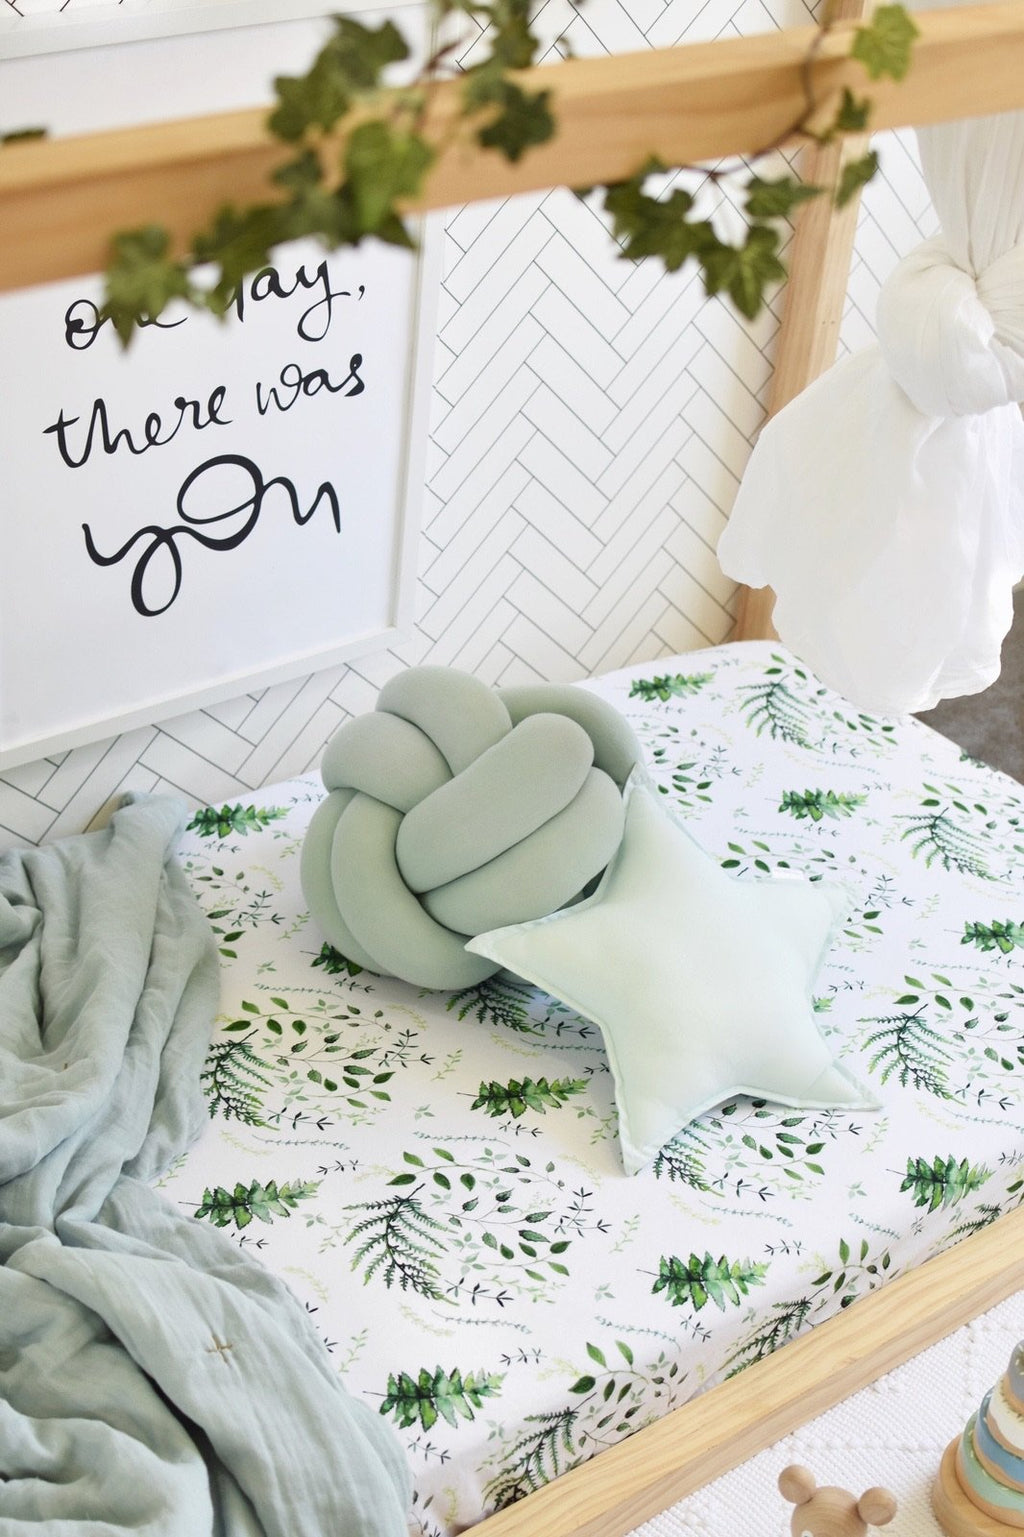 Snuggle Hunny Kids - Enchanted Fitted Cot Sheet